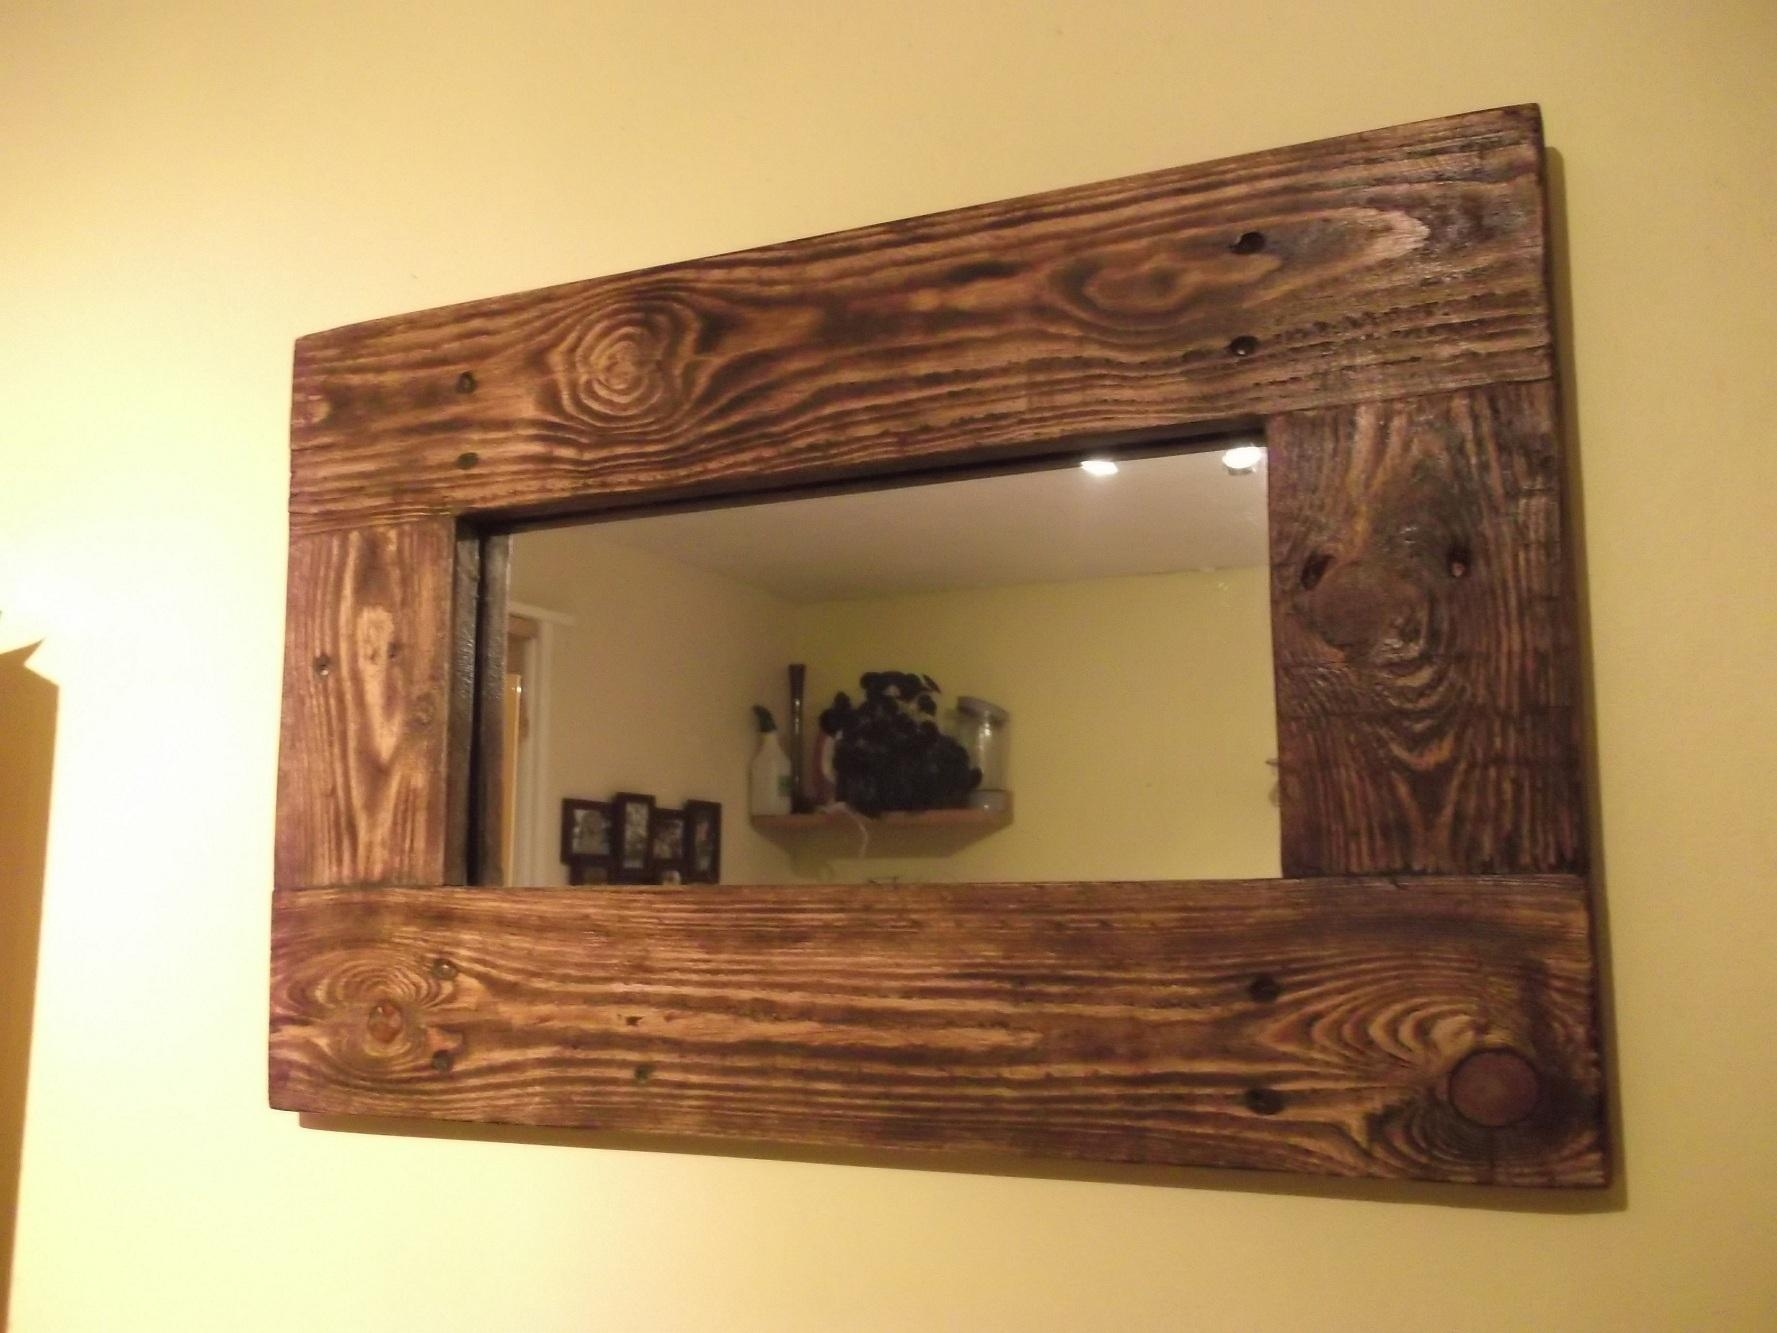 Rustic Wood Framed Diy Mirror Idea On Walls For Natural Decoration Within Natural Wood Framed Mirrors (Image 14 of 20)